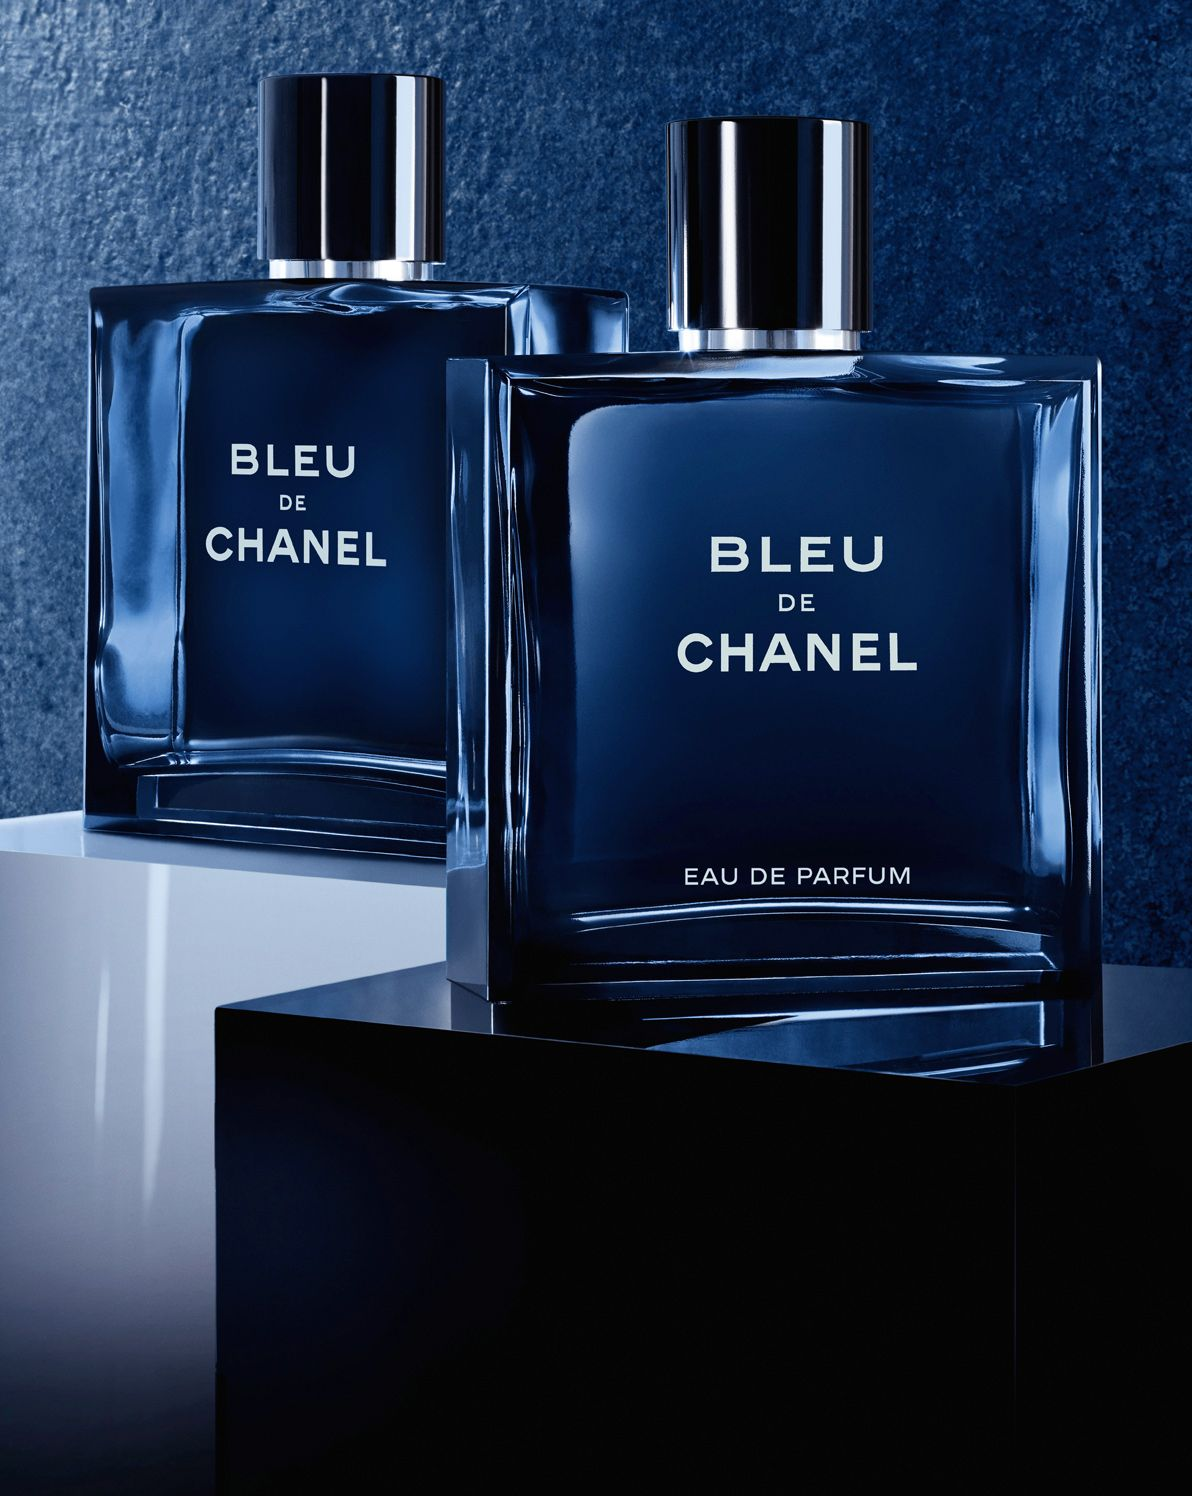 75ddf2c07b5 There are 5 most attractive scents or women s perfume according to men in  2018